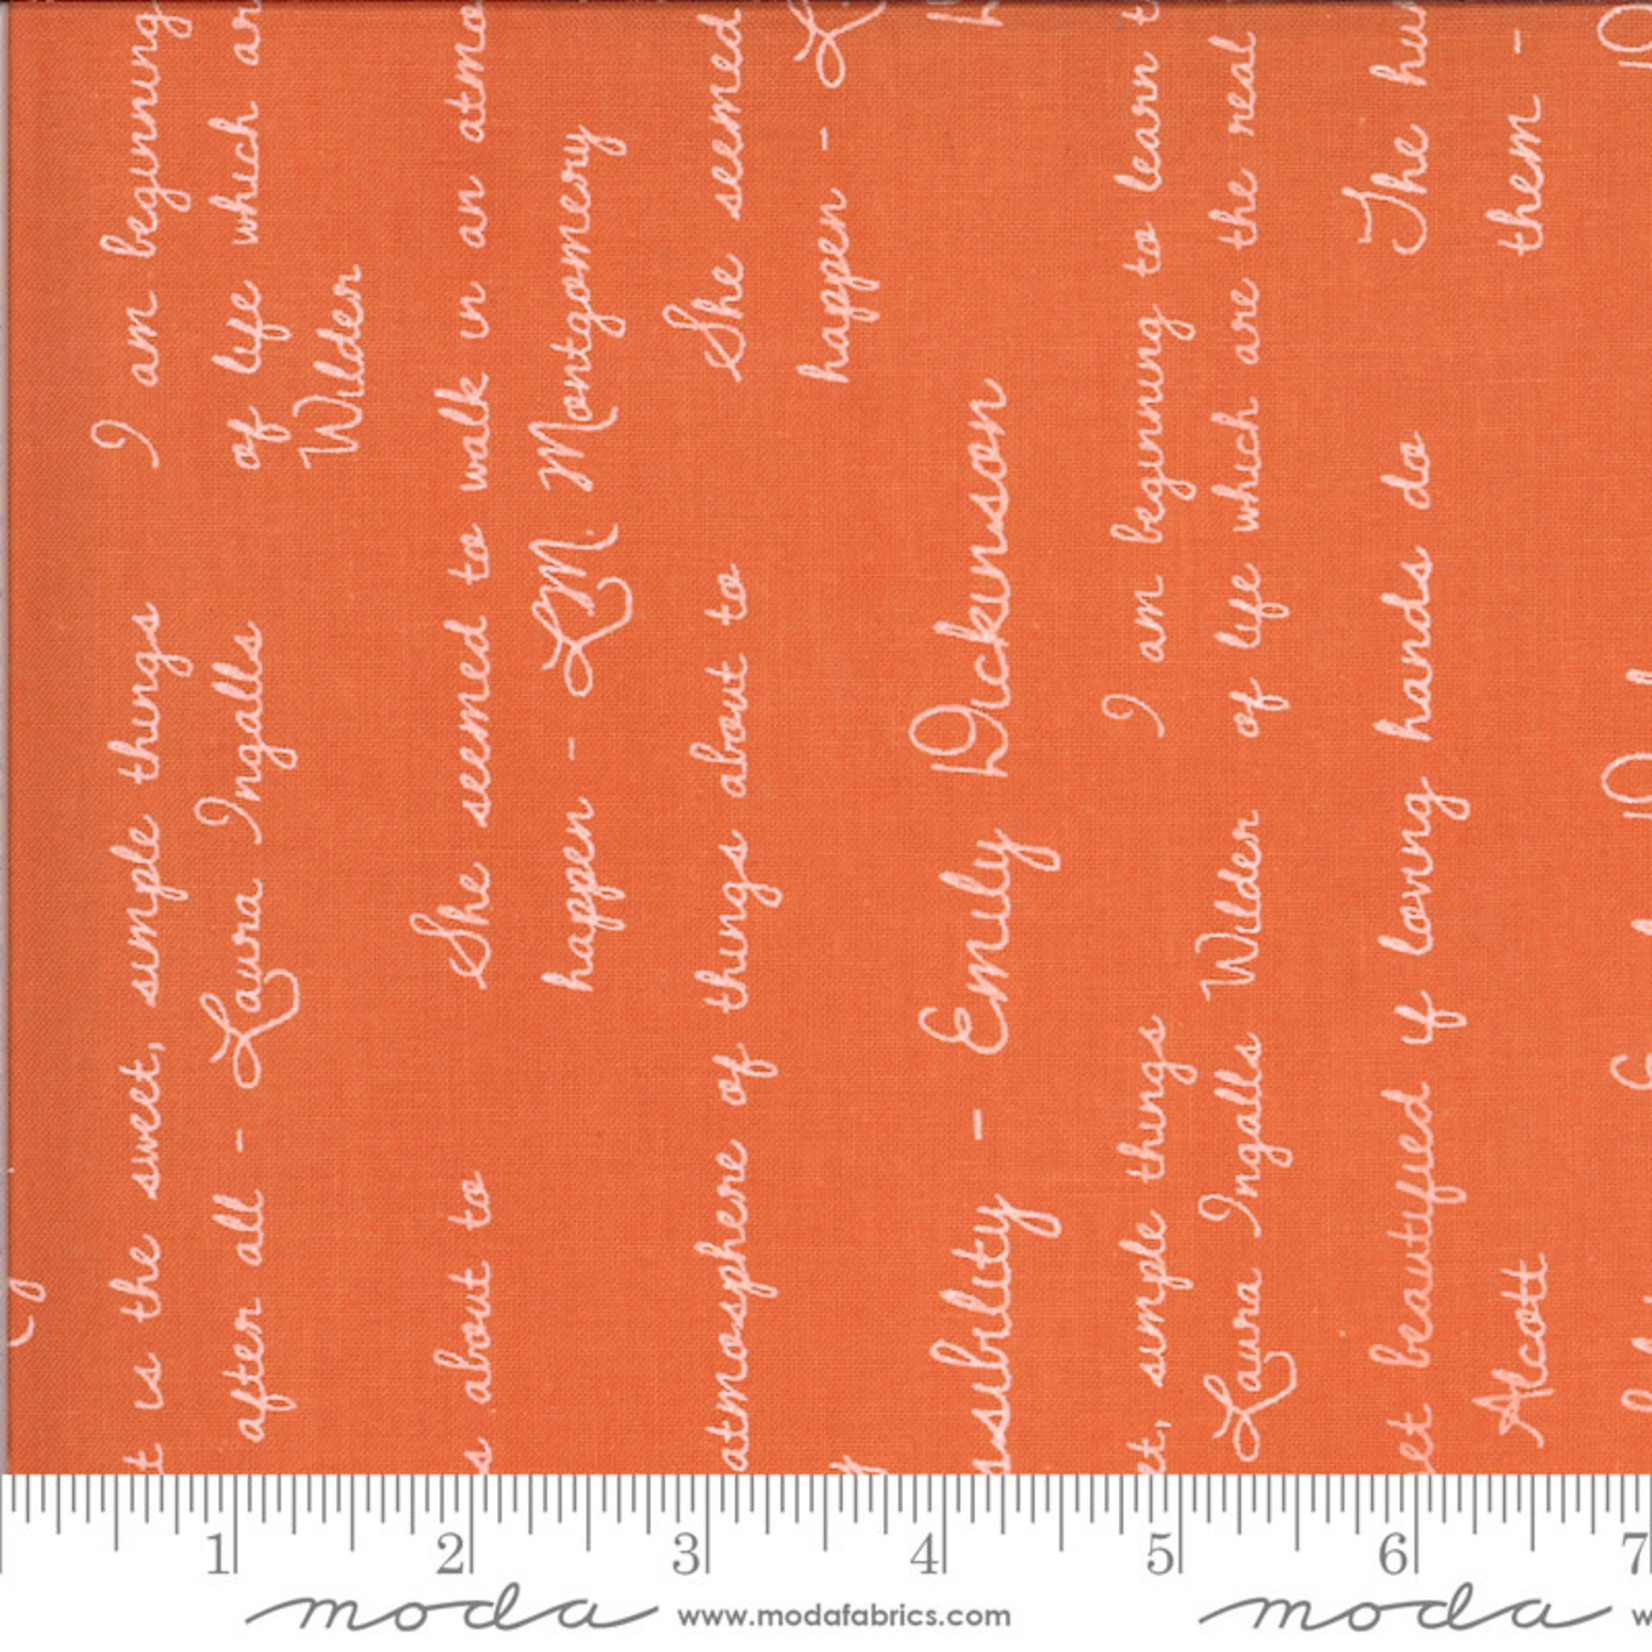 Gingiber Dwell In Possibility, Quotes, Poppy 48315 11 $0.20/cm or $20/m